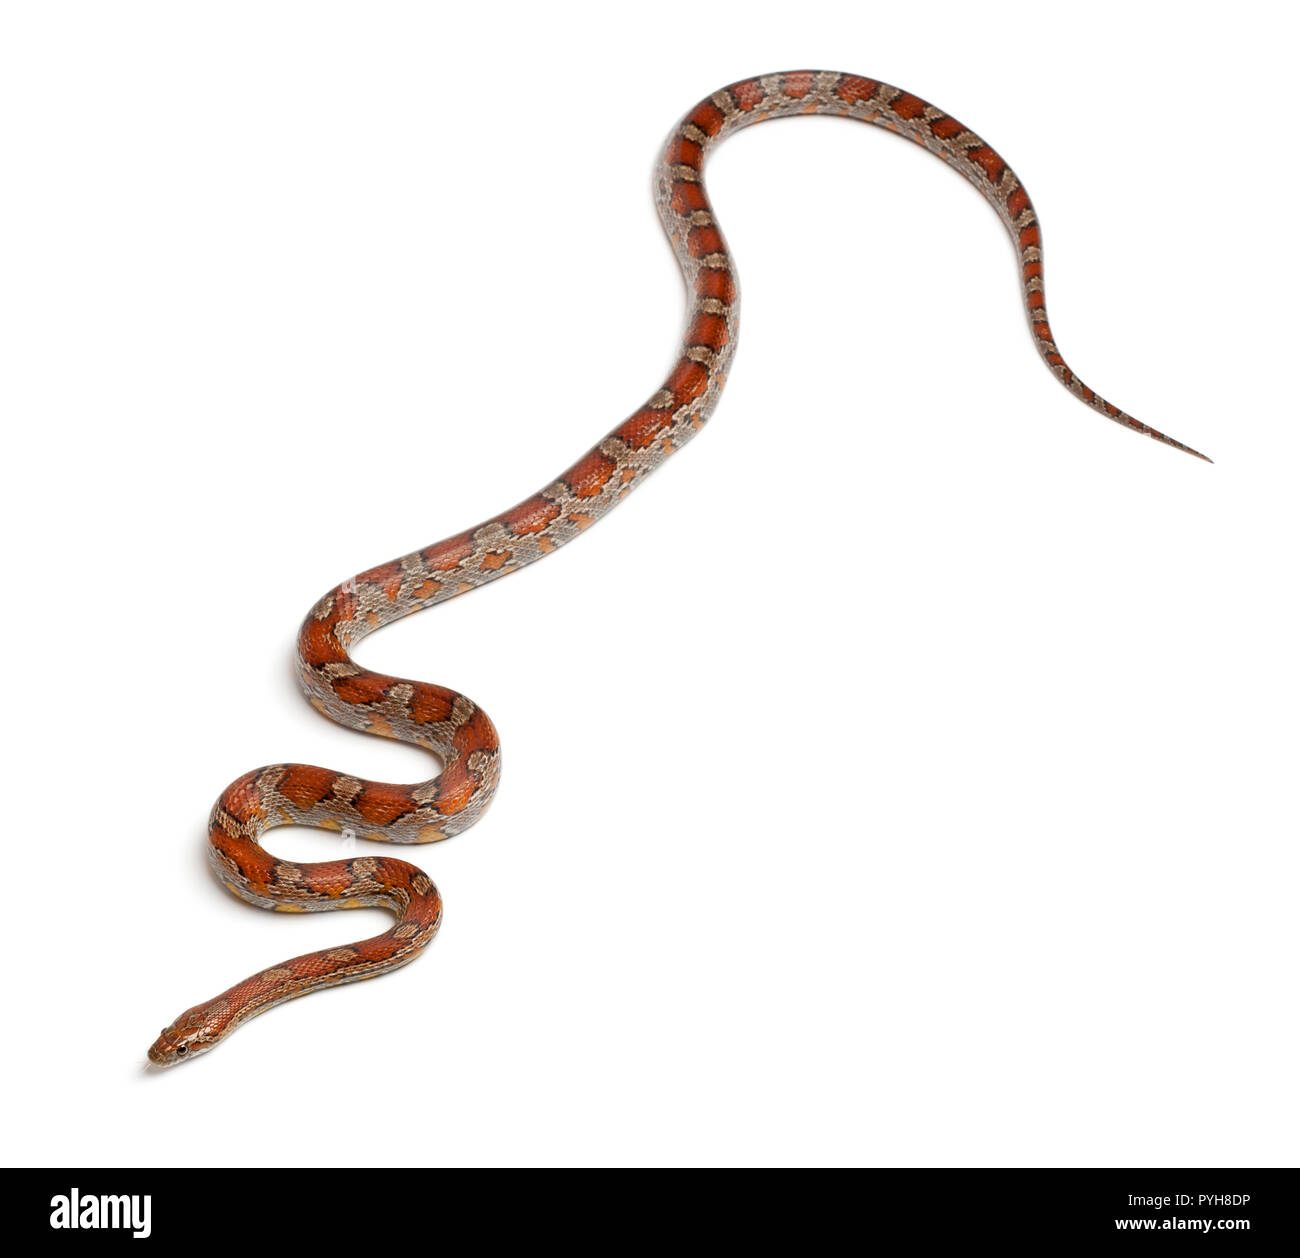 Miami Corn Snake or Red Rat Snake, Pantherophis guttatus, in front of white background Stock Photo